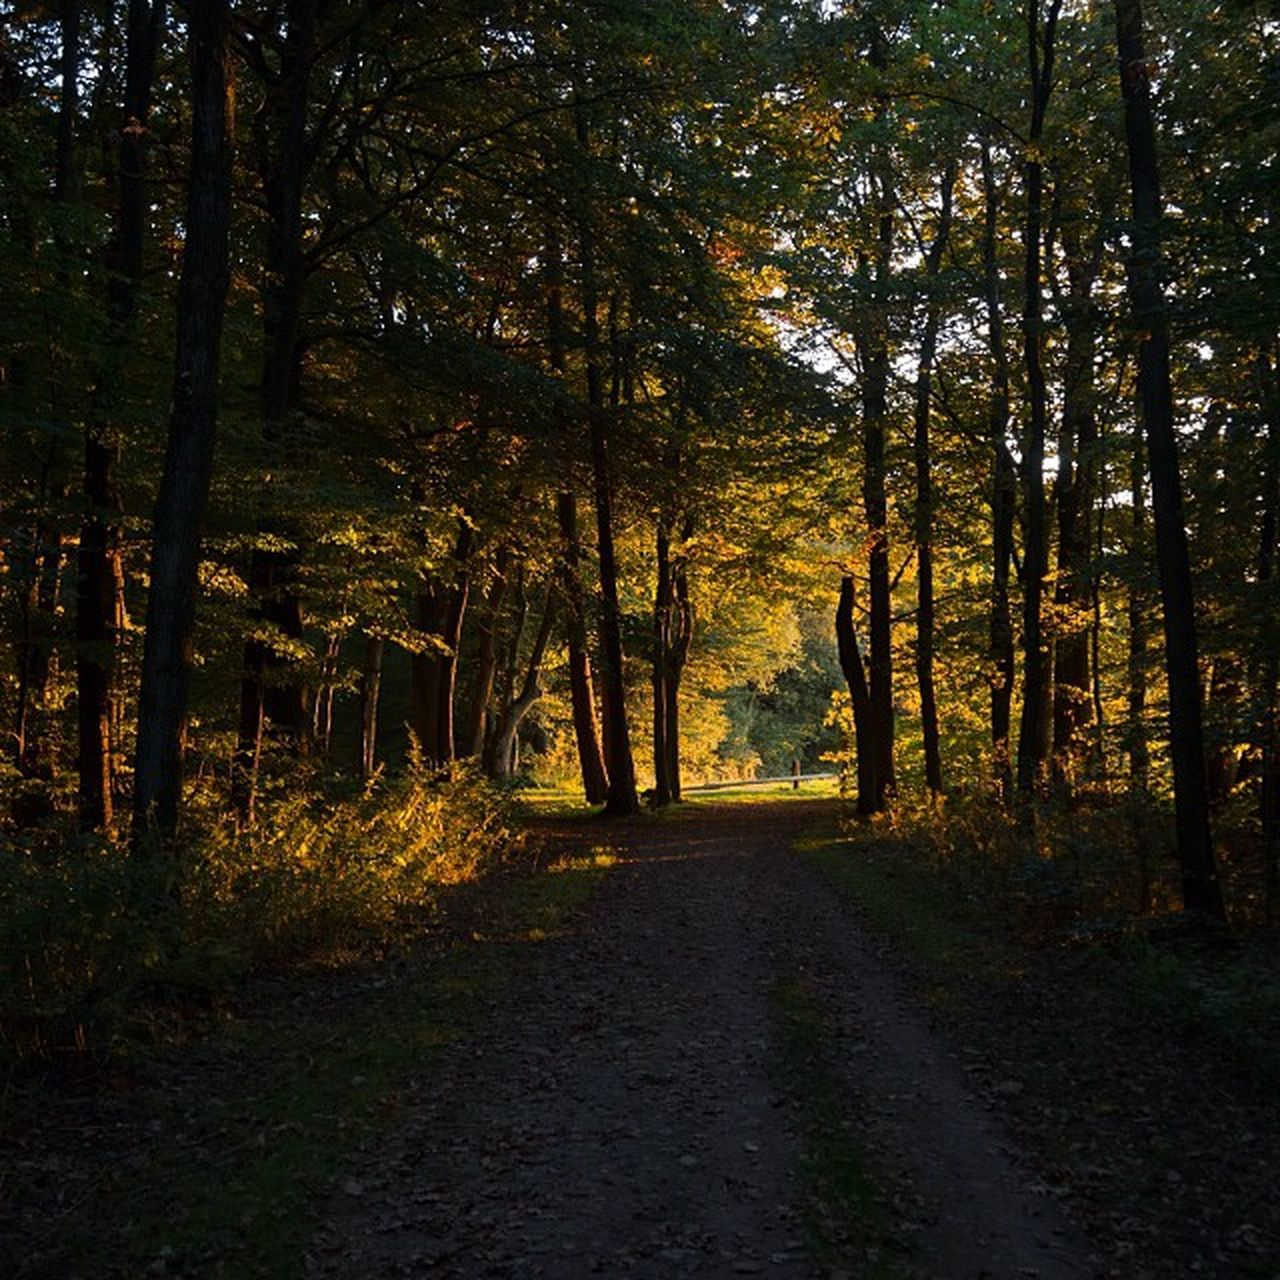 tree, forest, autumn, nature, tranquil scene, tranquility, scenics, beauty in nature, the way forward, outdoors, woodland, no people, landscape, road, tree trunk, day, growth, leaf, sky